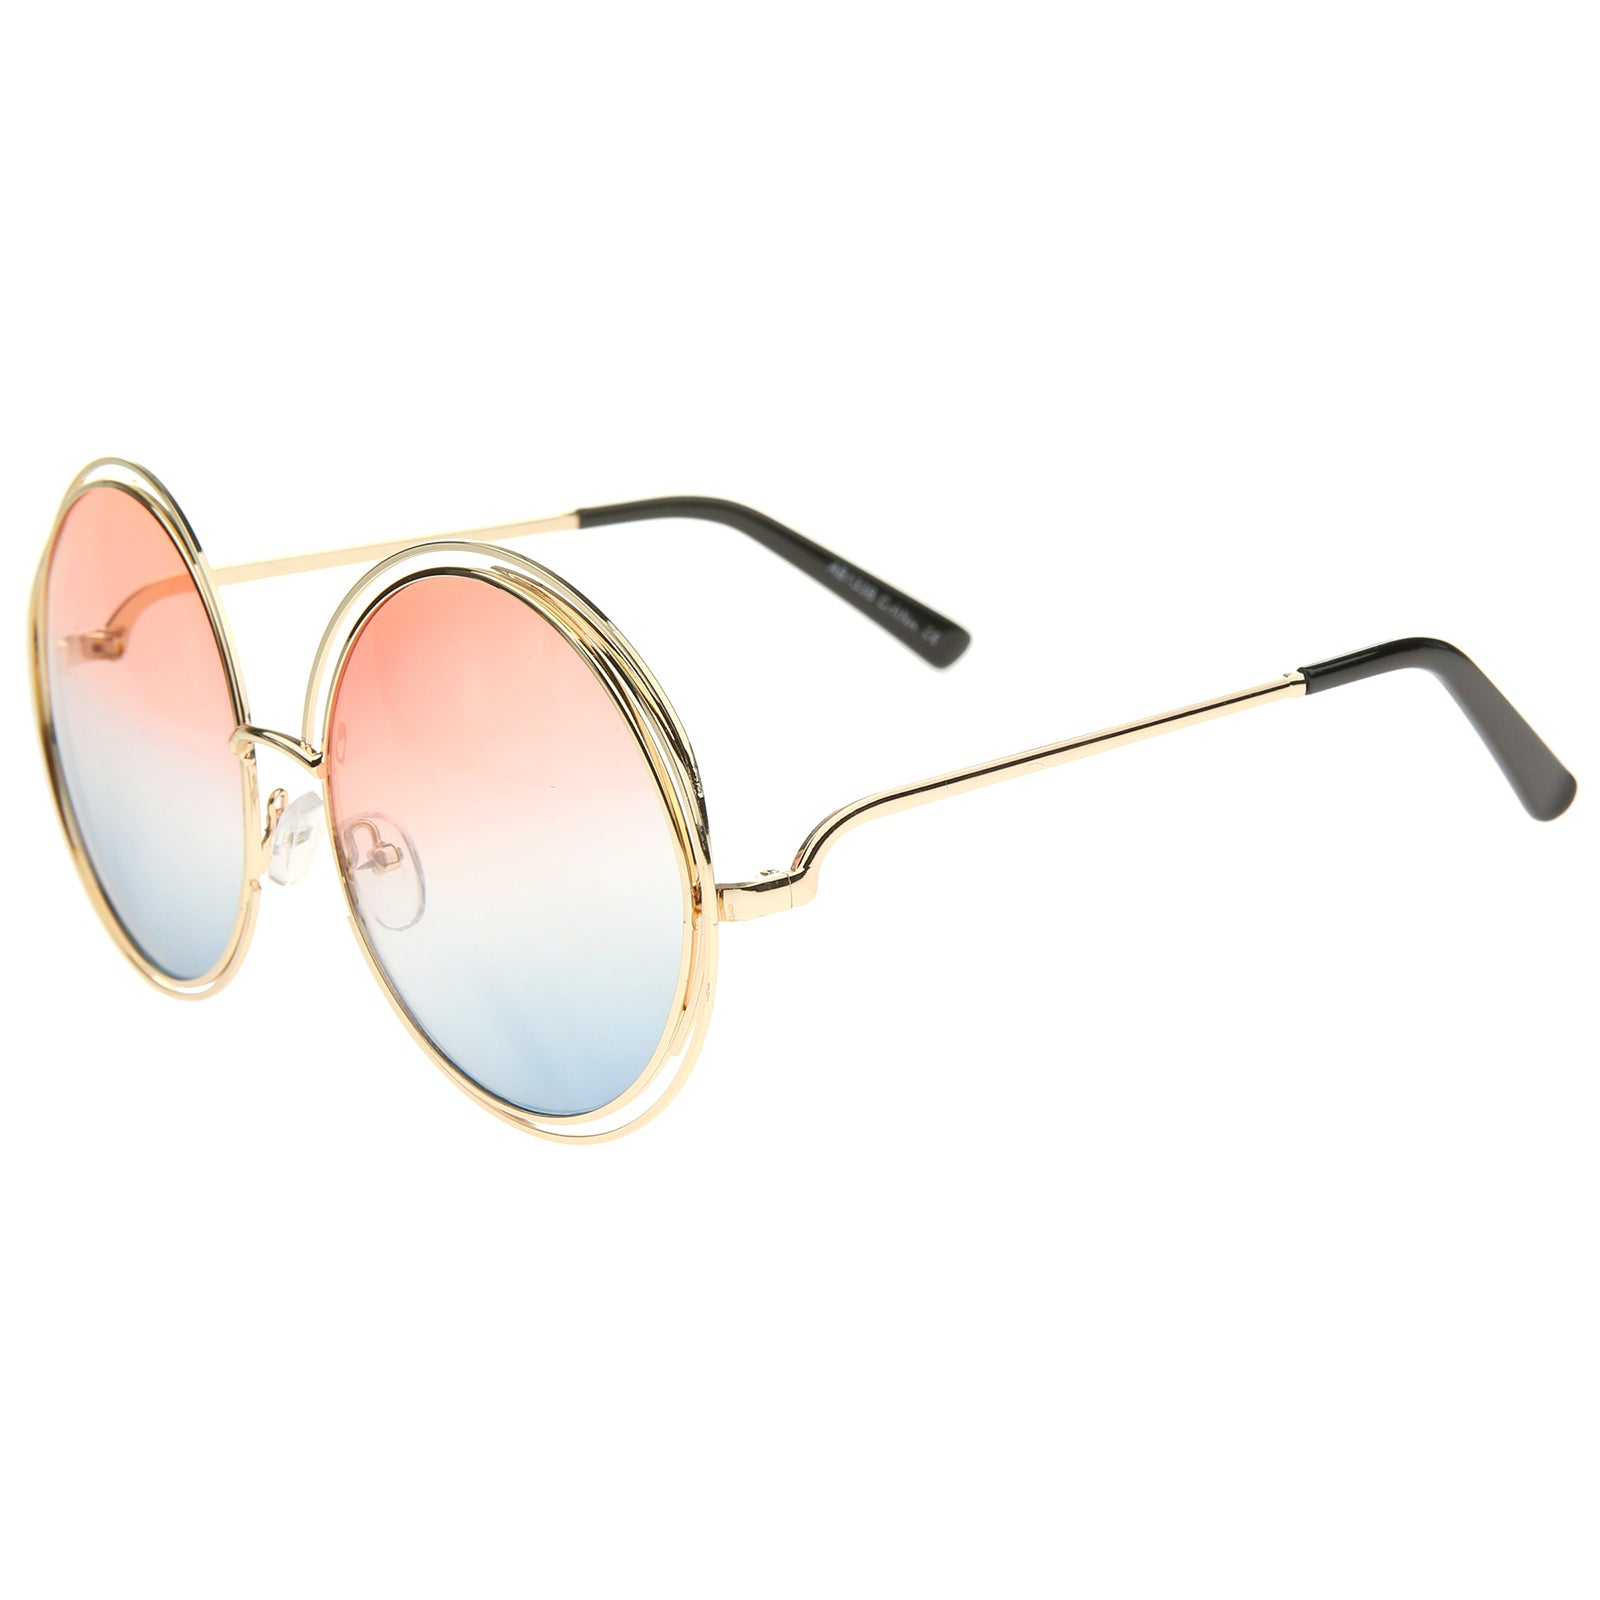 Oversize Wire Frame Gradient Two-Tone Color Lens Round Sunglasses 61mm - sunglass.la - 23